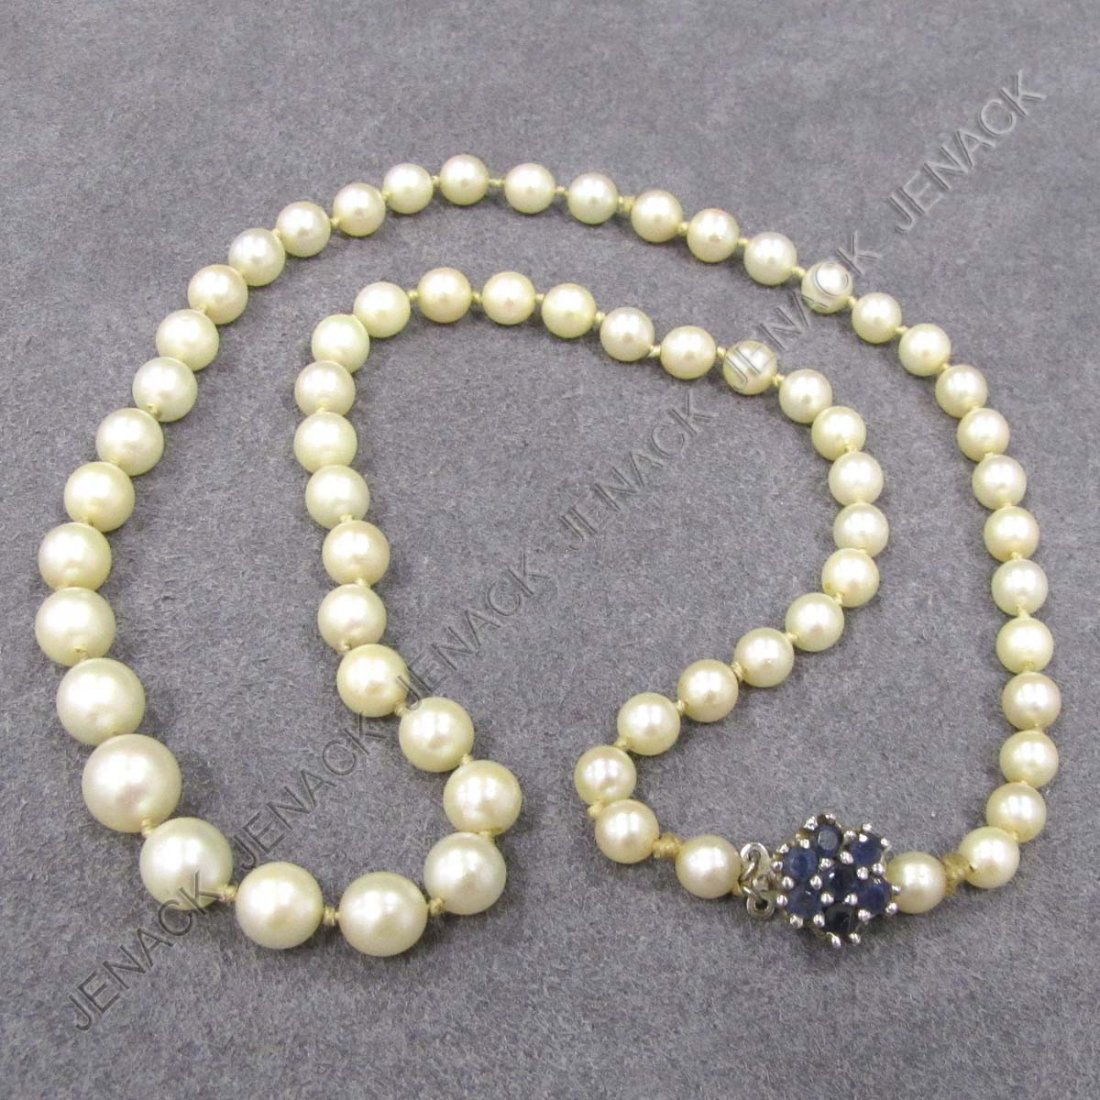 21: STRAND 5.4-8.39MM GRADUATED CULTURE PEARL NECKLACE